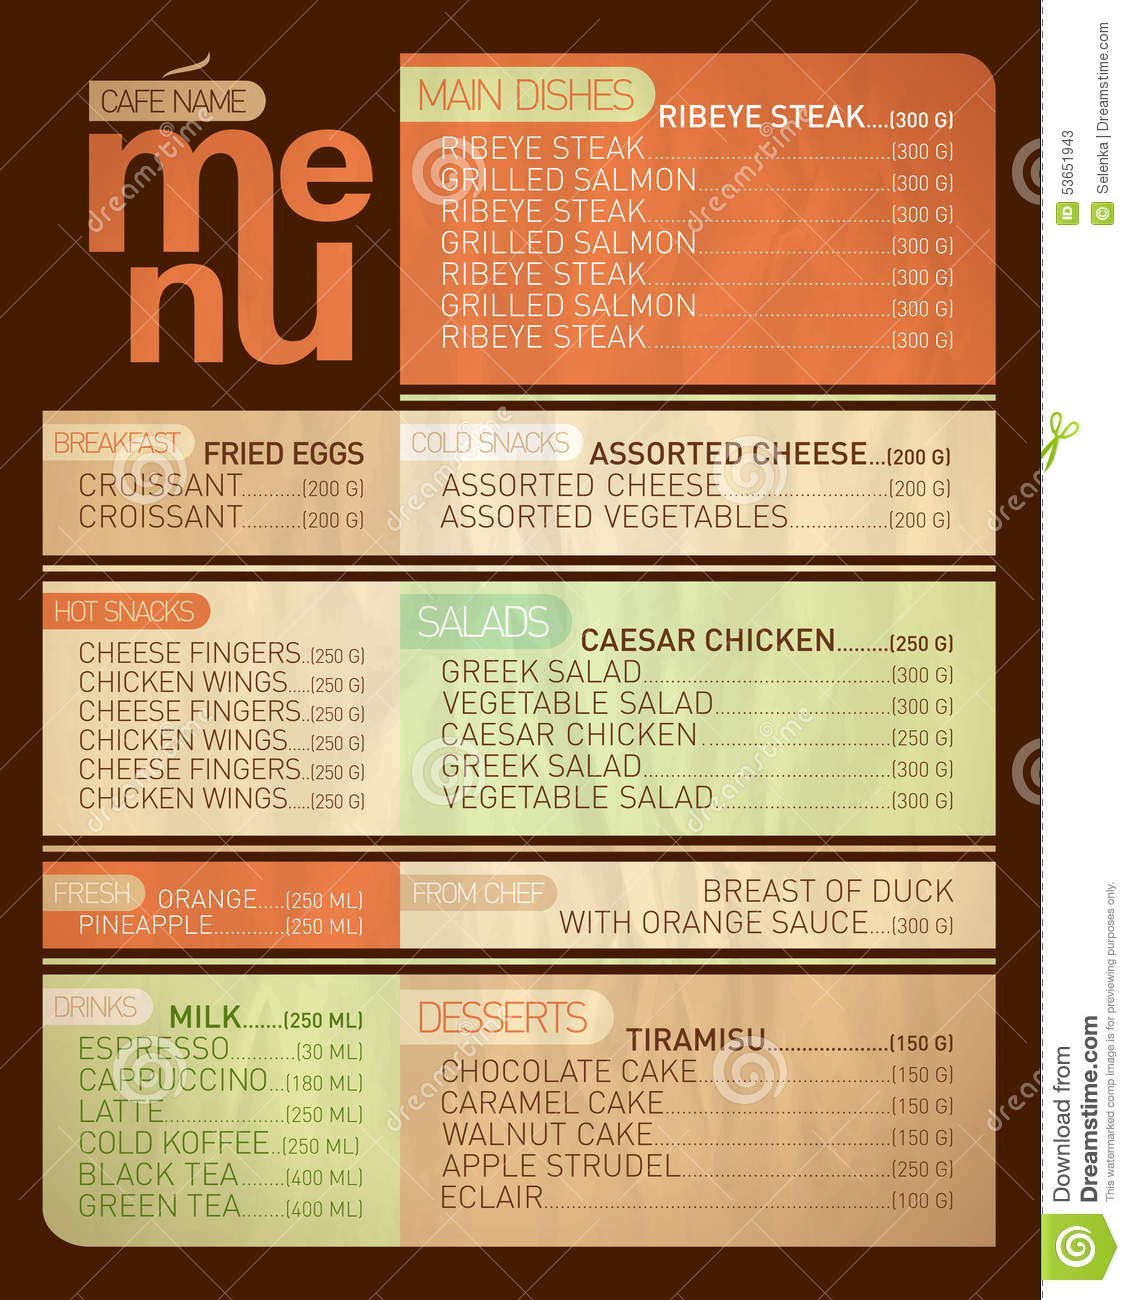 Cafe Menu List. Stock Vector - Image: 53651943